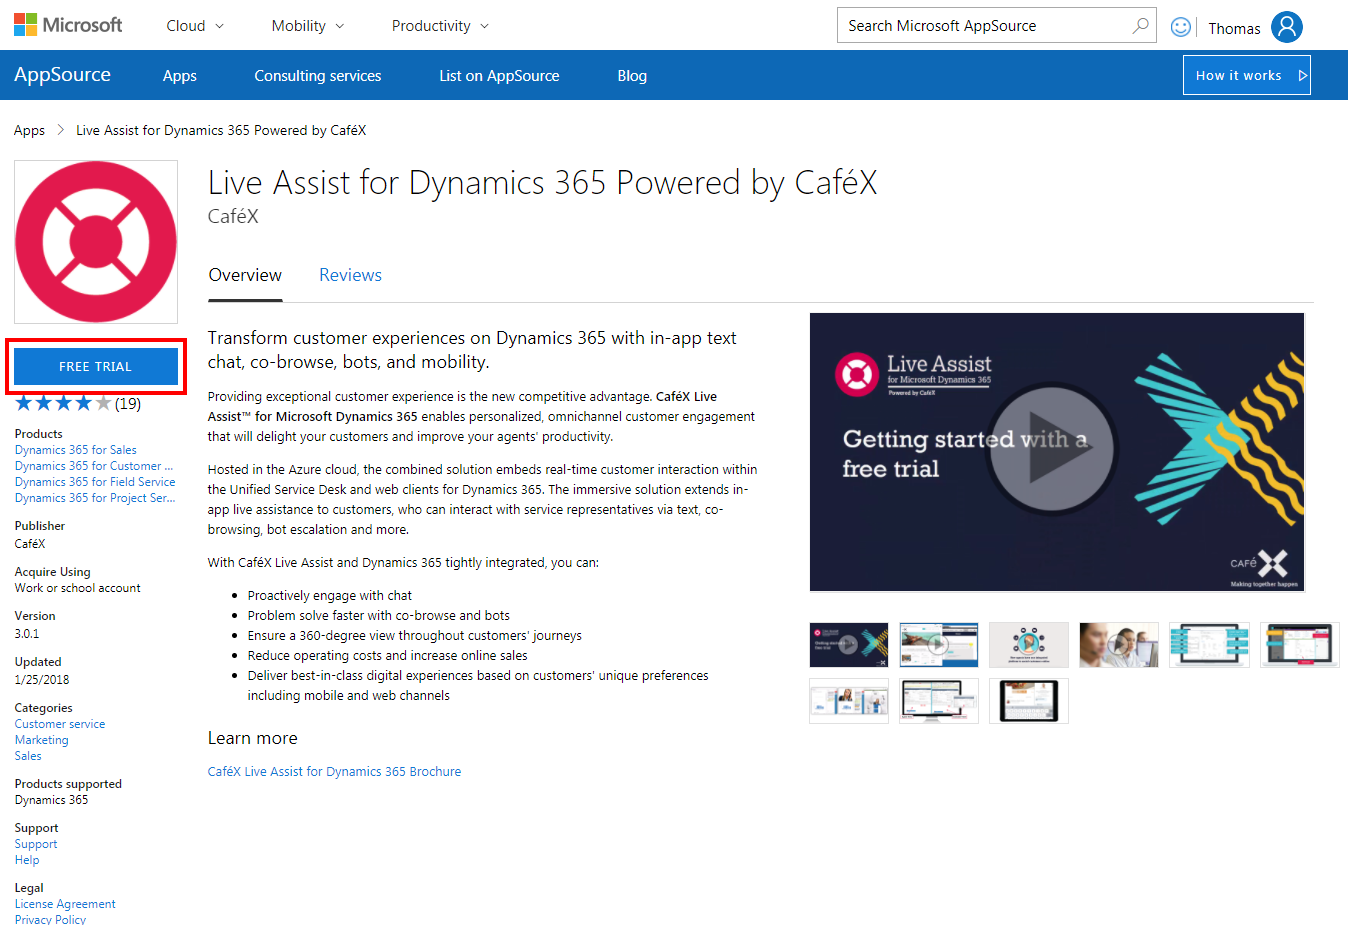 2018-04-20 15_45_23-Live Assist for Dynamics 365 Powered by CaféX.png